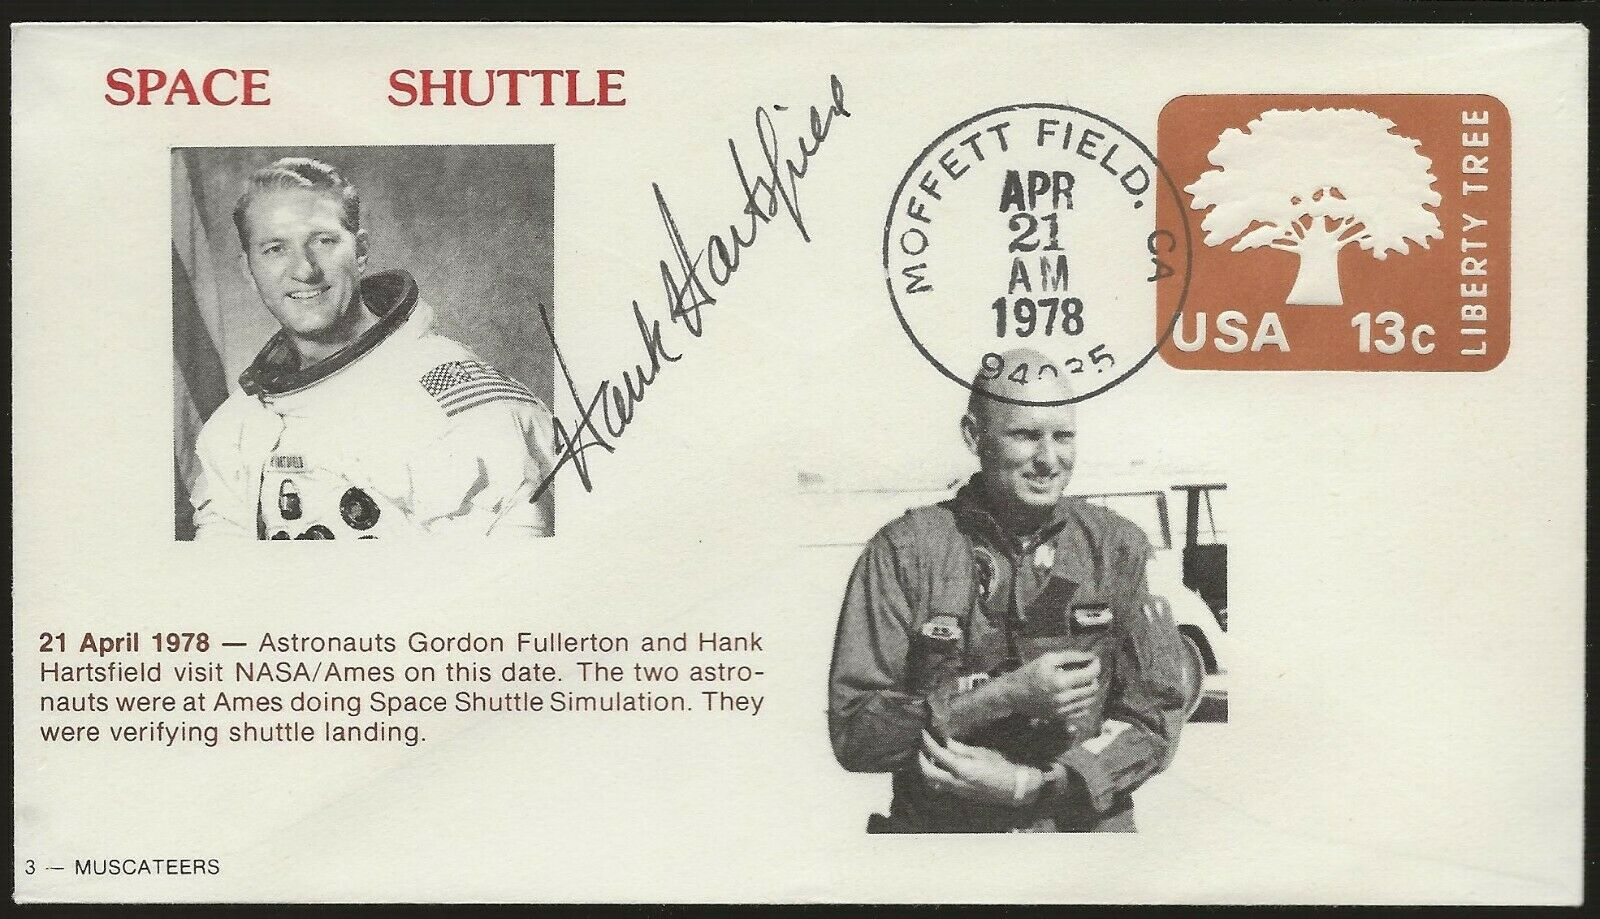 s l1600 - 1978 Space Shuttle Cover Autographed by Astronaut Hank Hartsfield